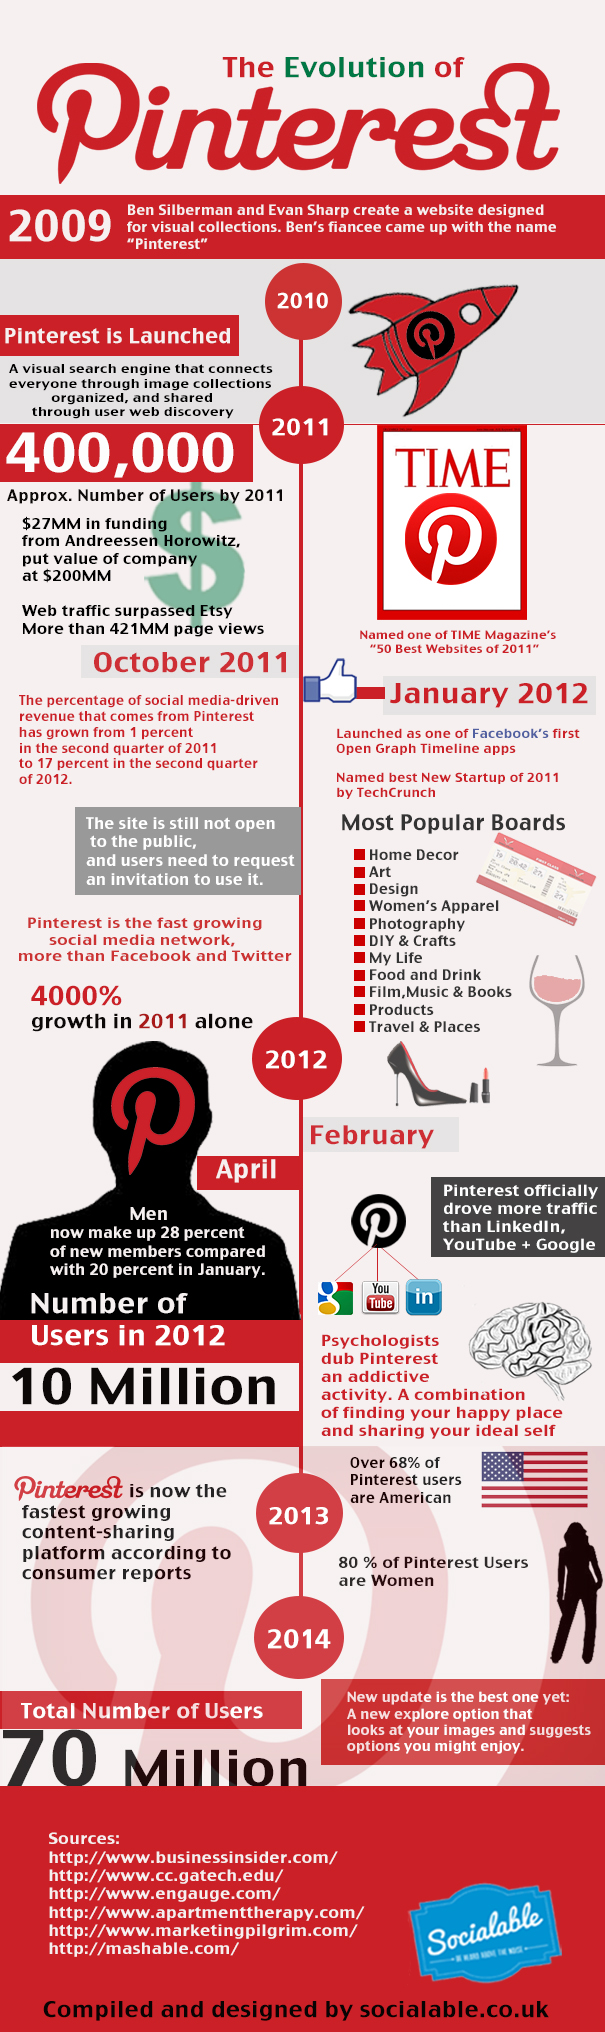 Evolution of Pinterest